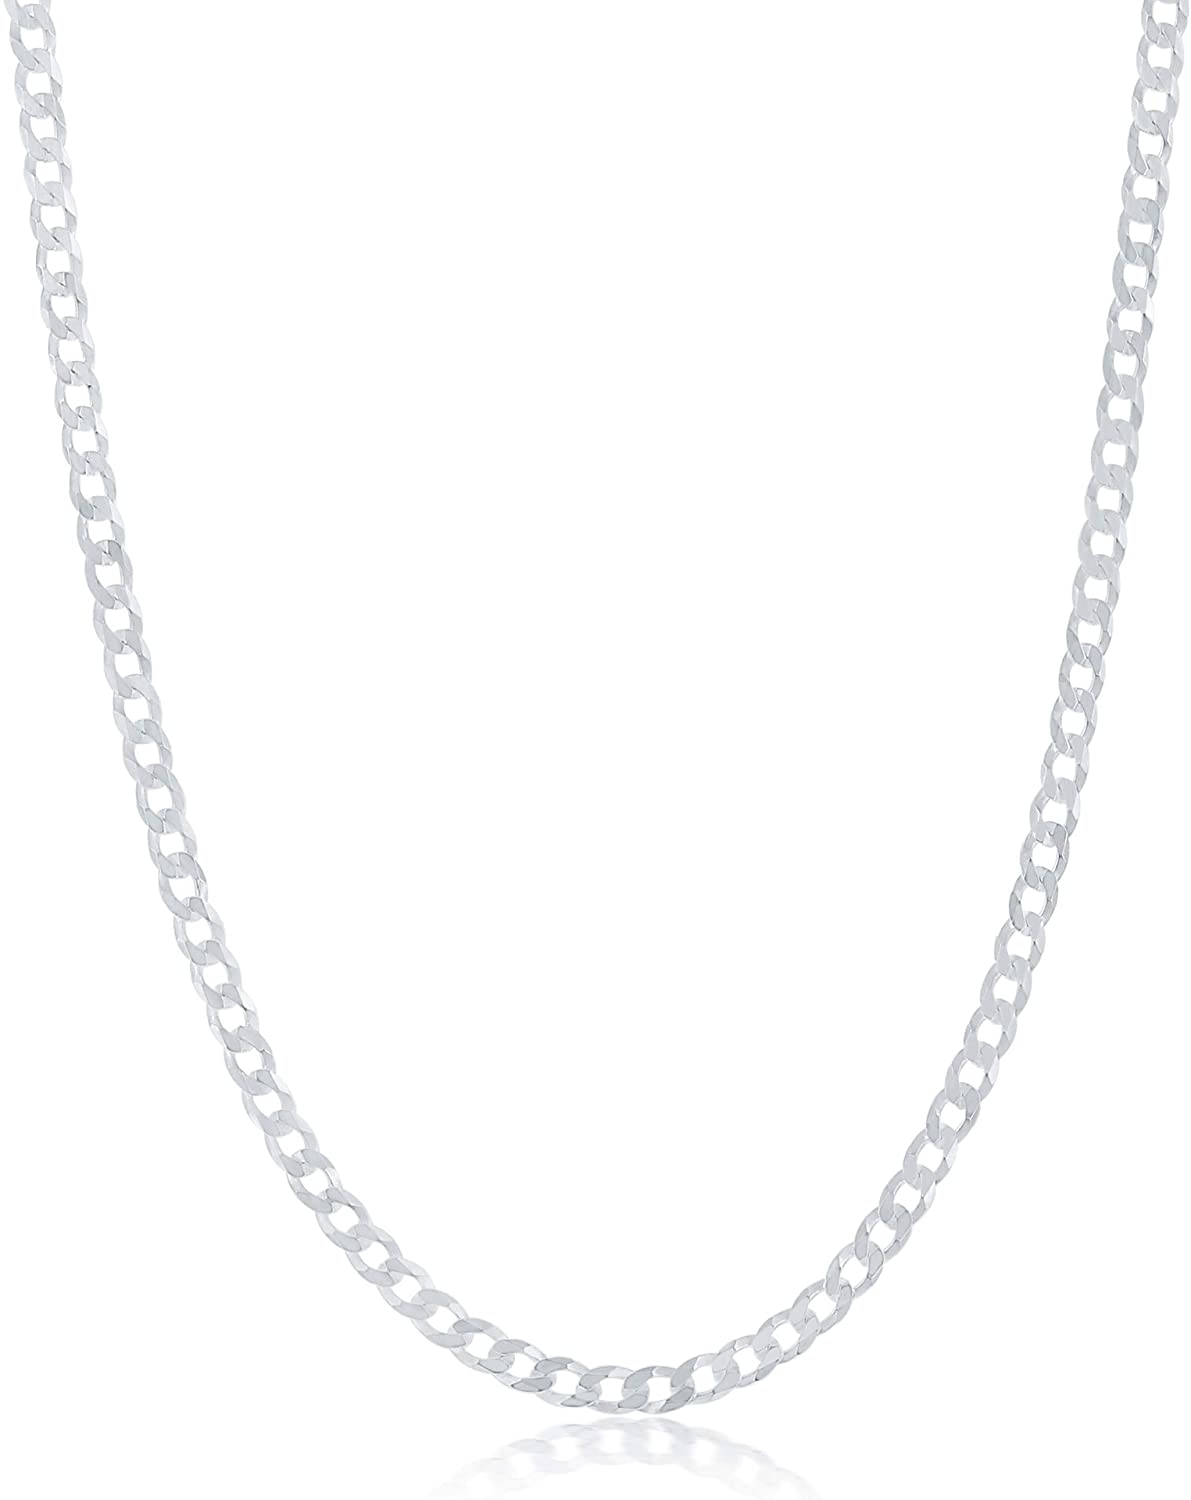 NYC Sterling Chain Necklace 3MM Sterling Silver .925 Curb Link For Men And Women, Made In Italy